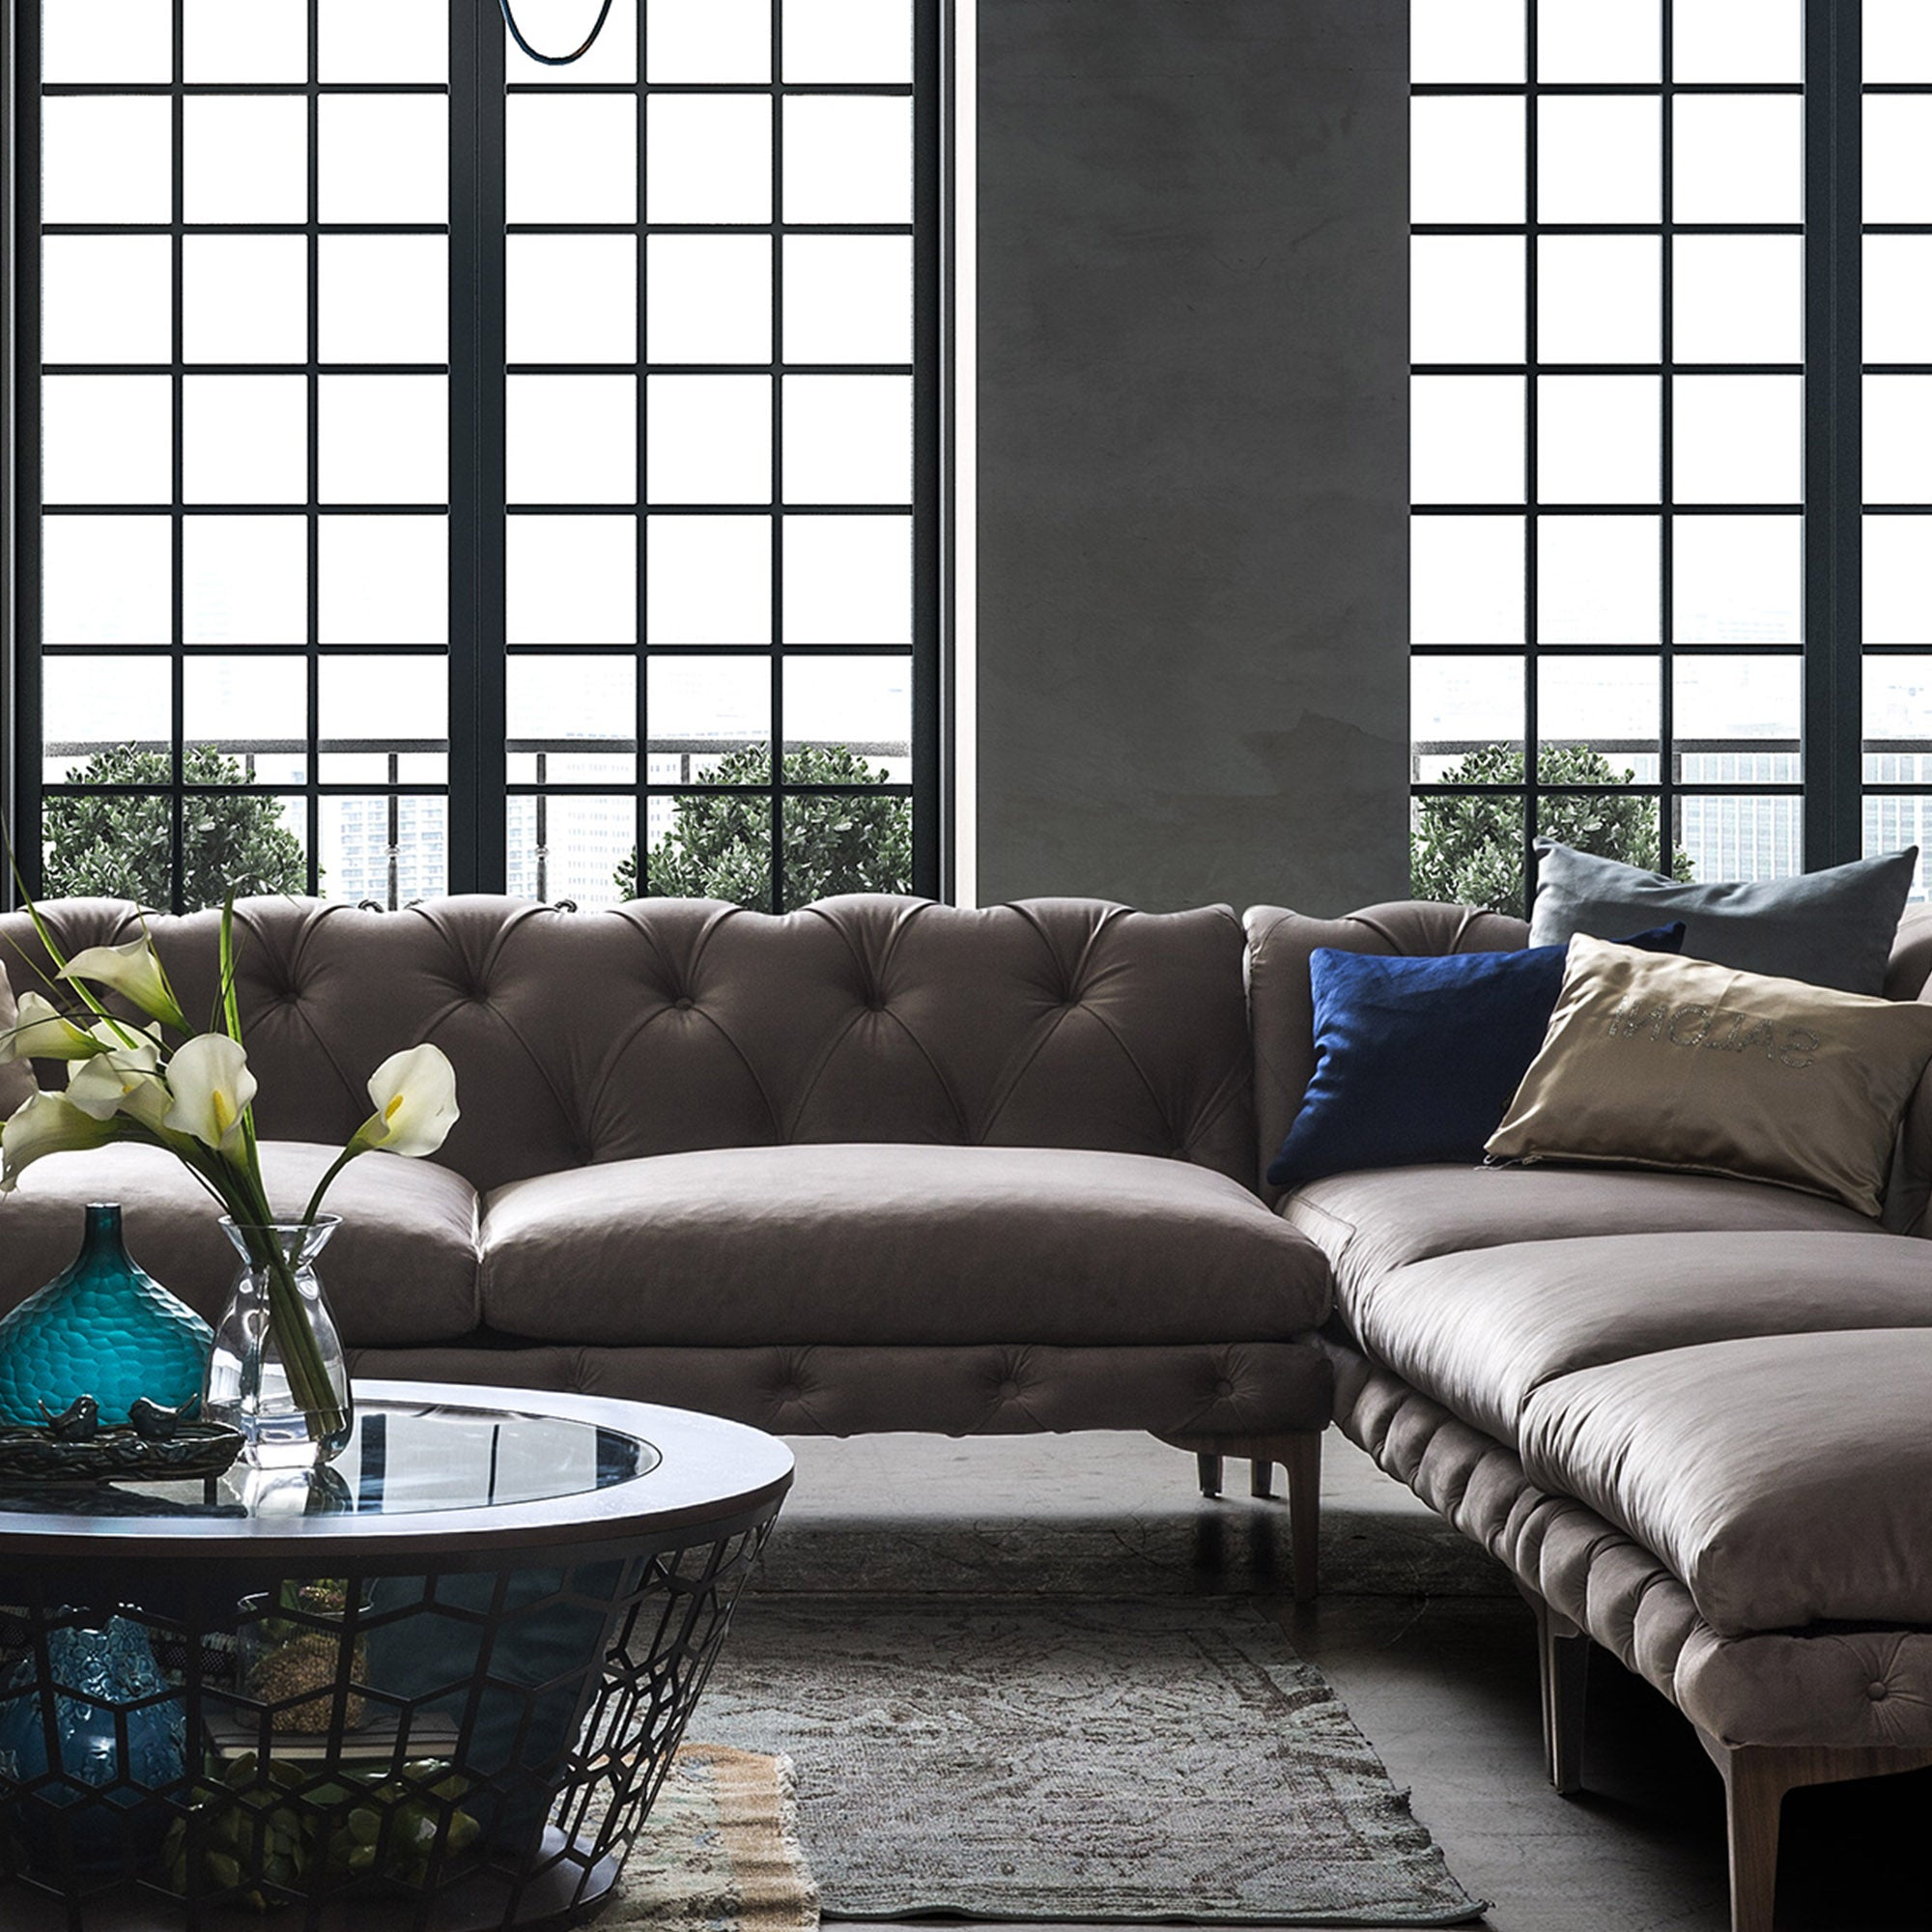 Porto Sectional  sofa a Por001 -  أريكة مقطعية بورتو - Shop Online Furniture and Home Decor Store in Dubai, UAE at ebarza